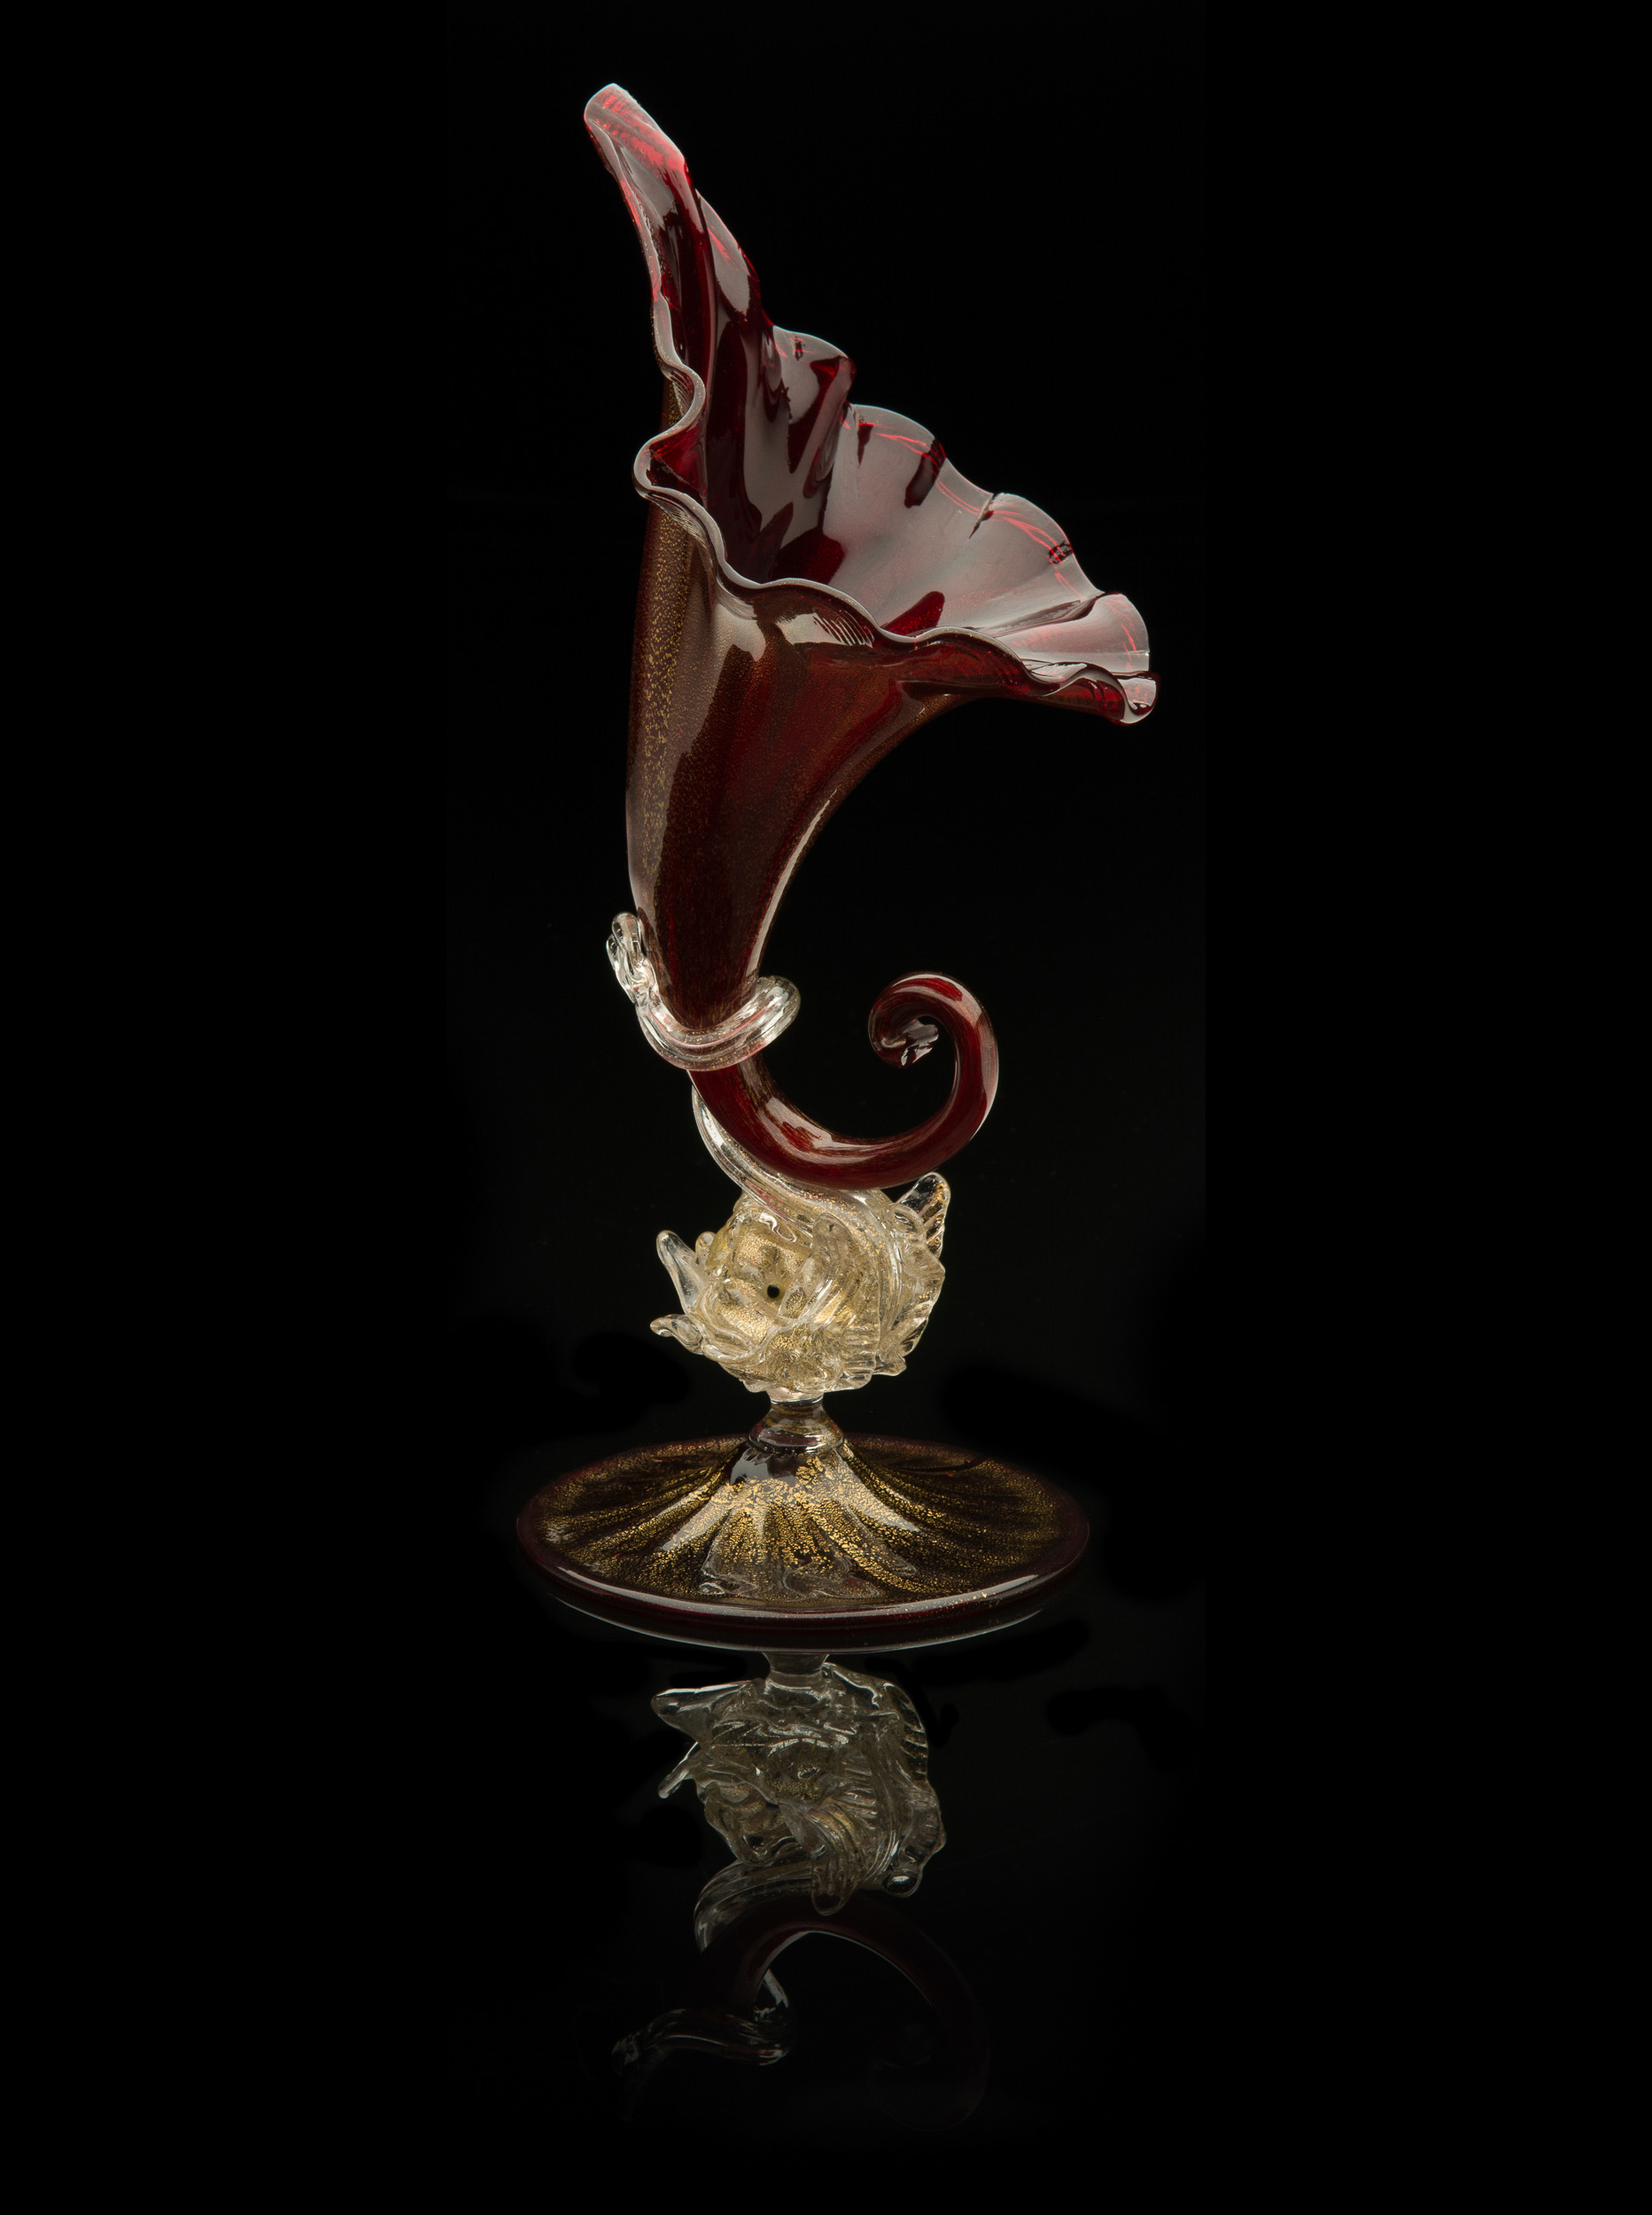 Salviati and Company, Ruby Red Venetian Horn of Plenty with Dolphin Stem and Twisted Tail (1864-1870, glass, 11 1/2 x 4 1/2inches), VV.524